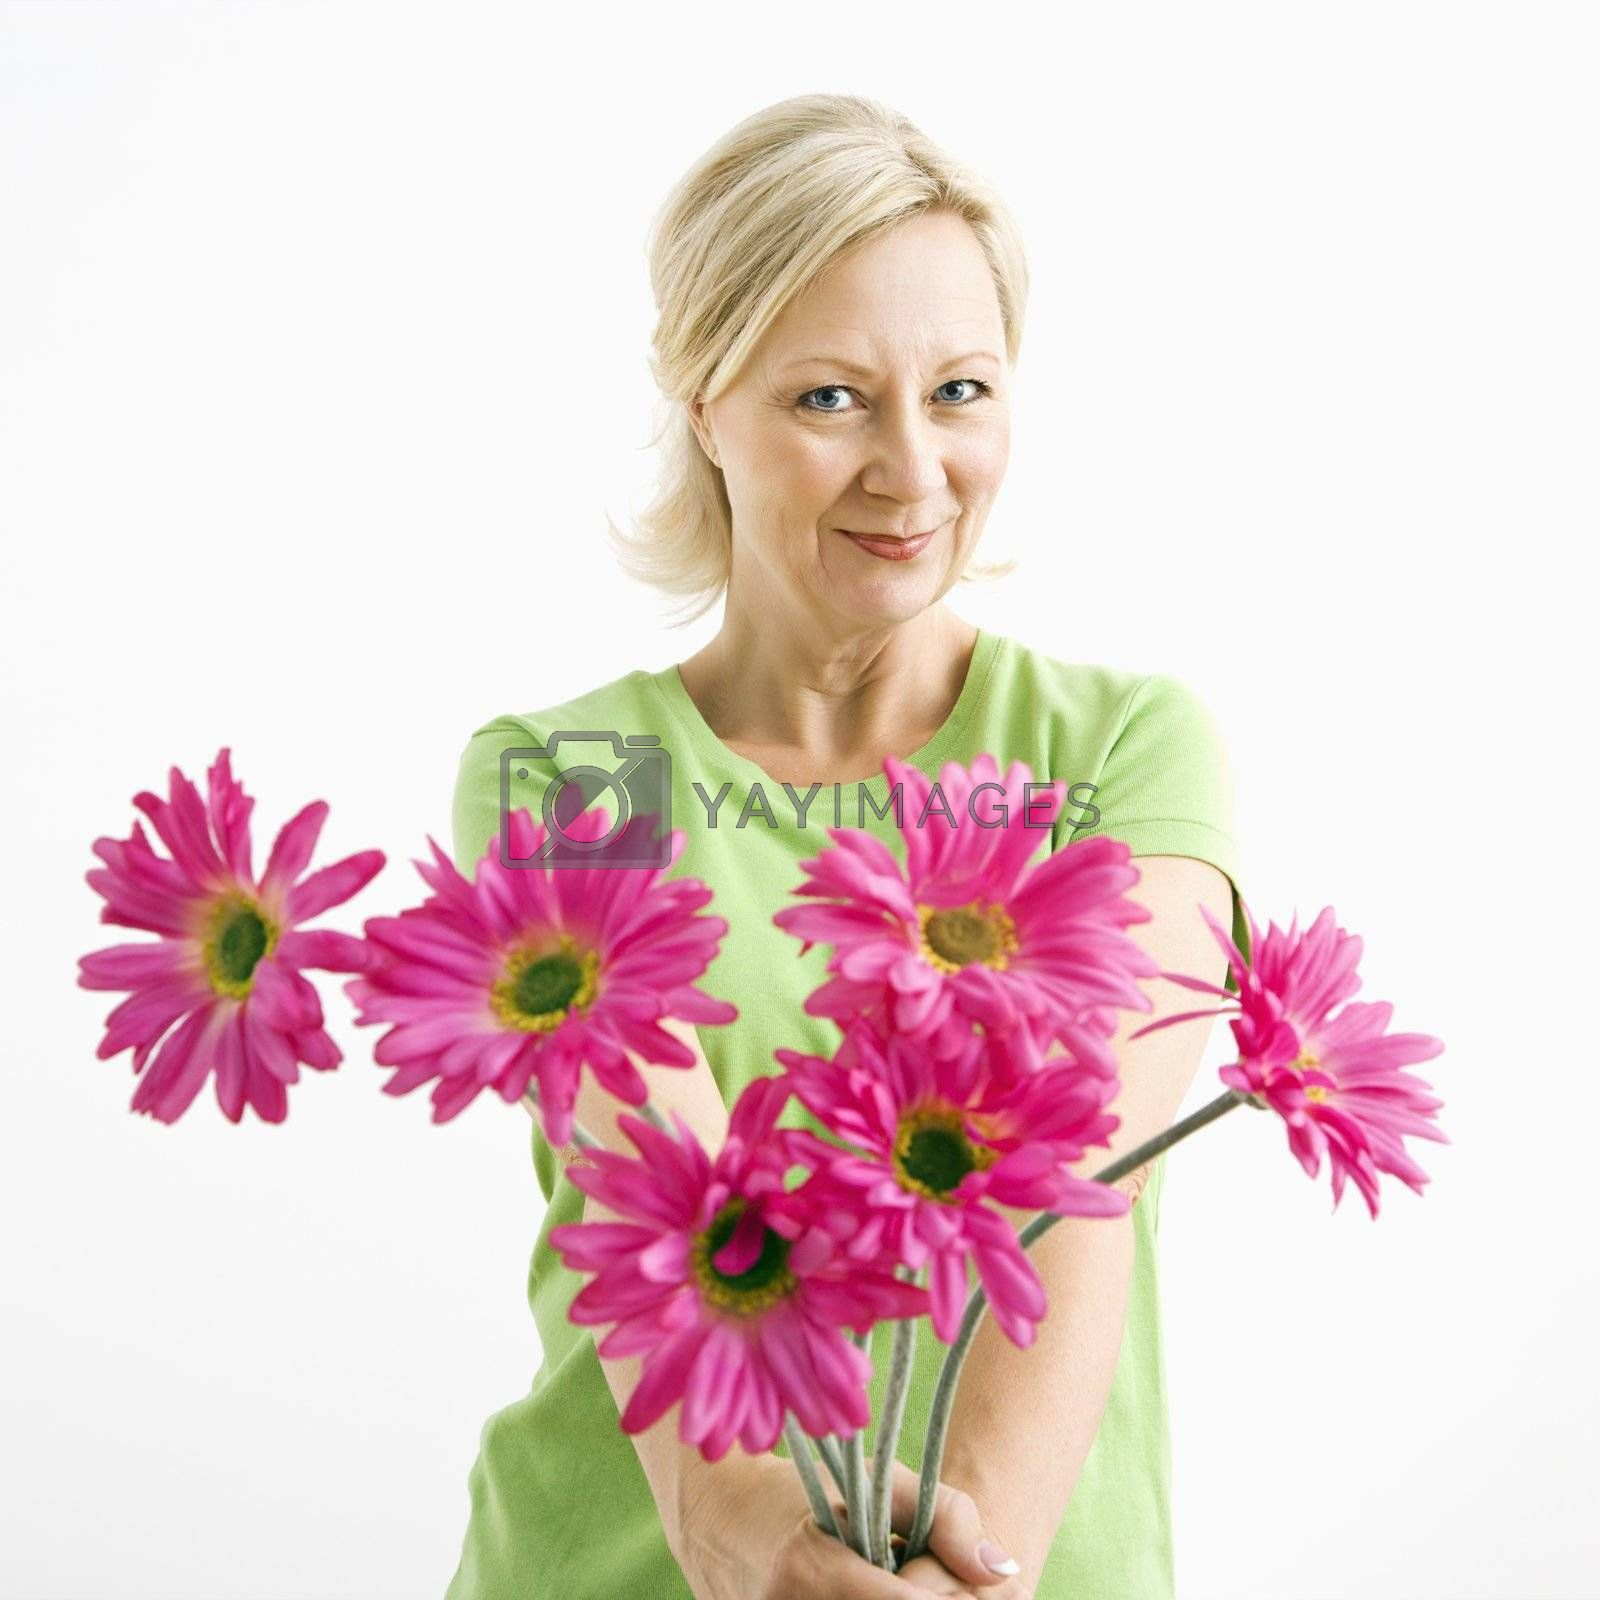 Portrait of smiling adult blonde woman giving bouquet of pink flowers to viewer.